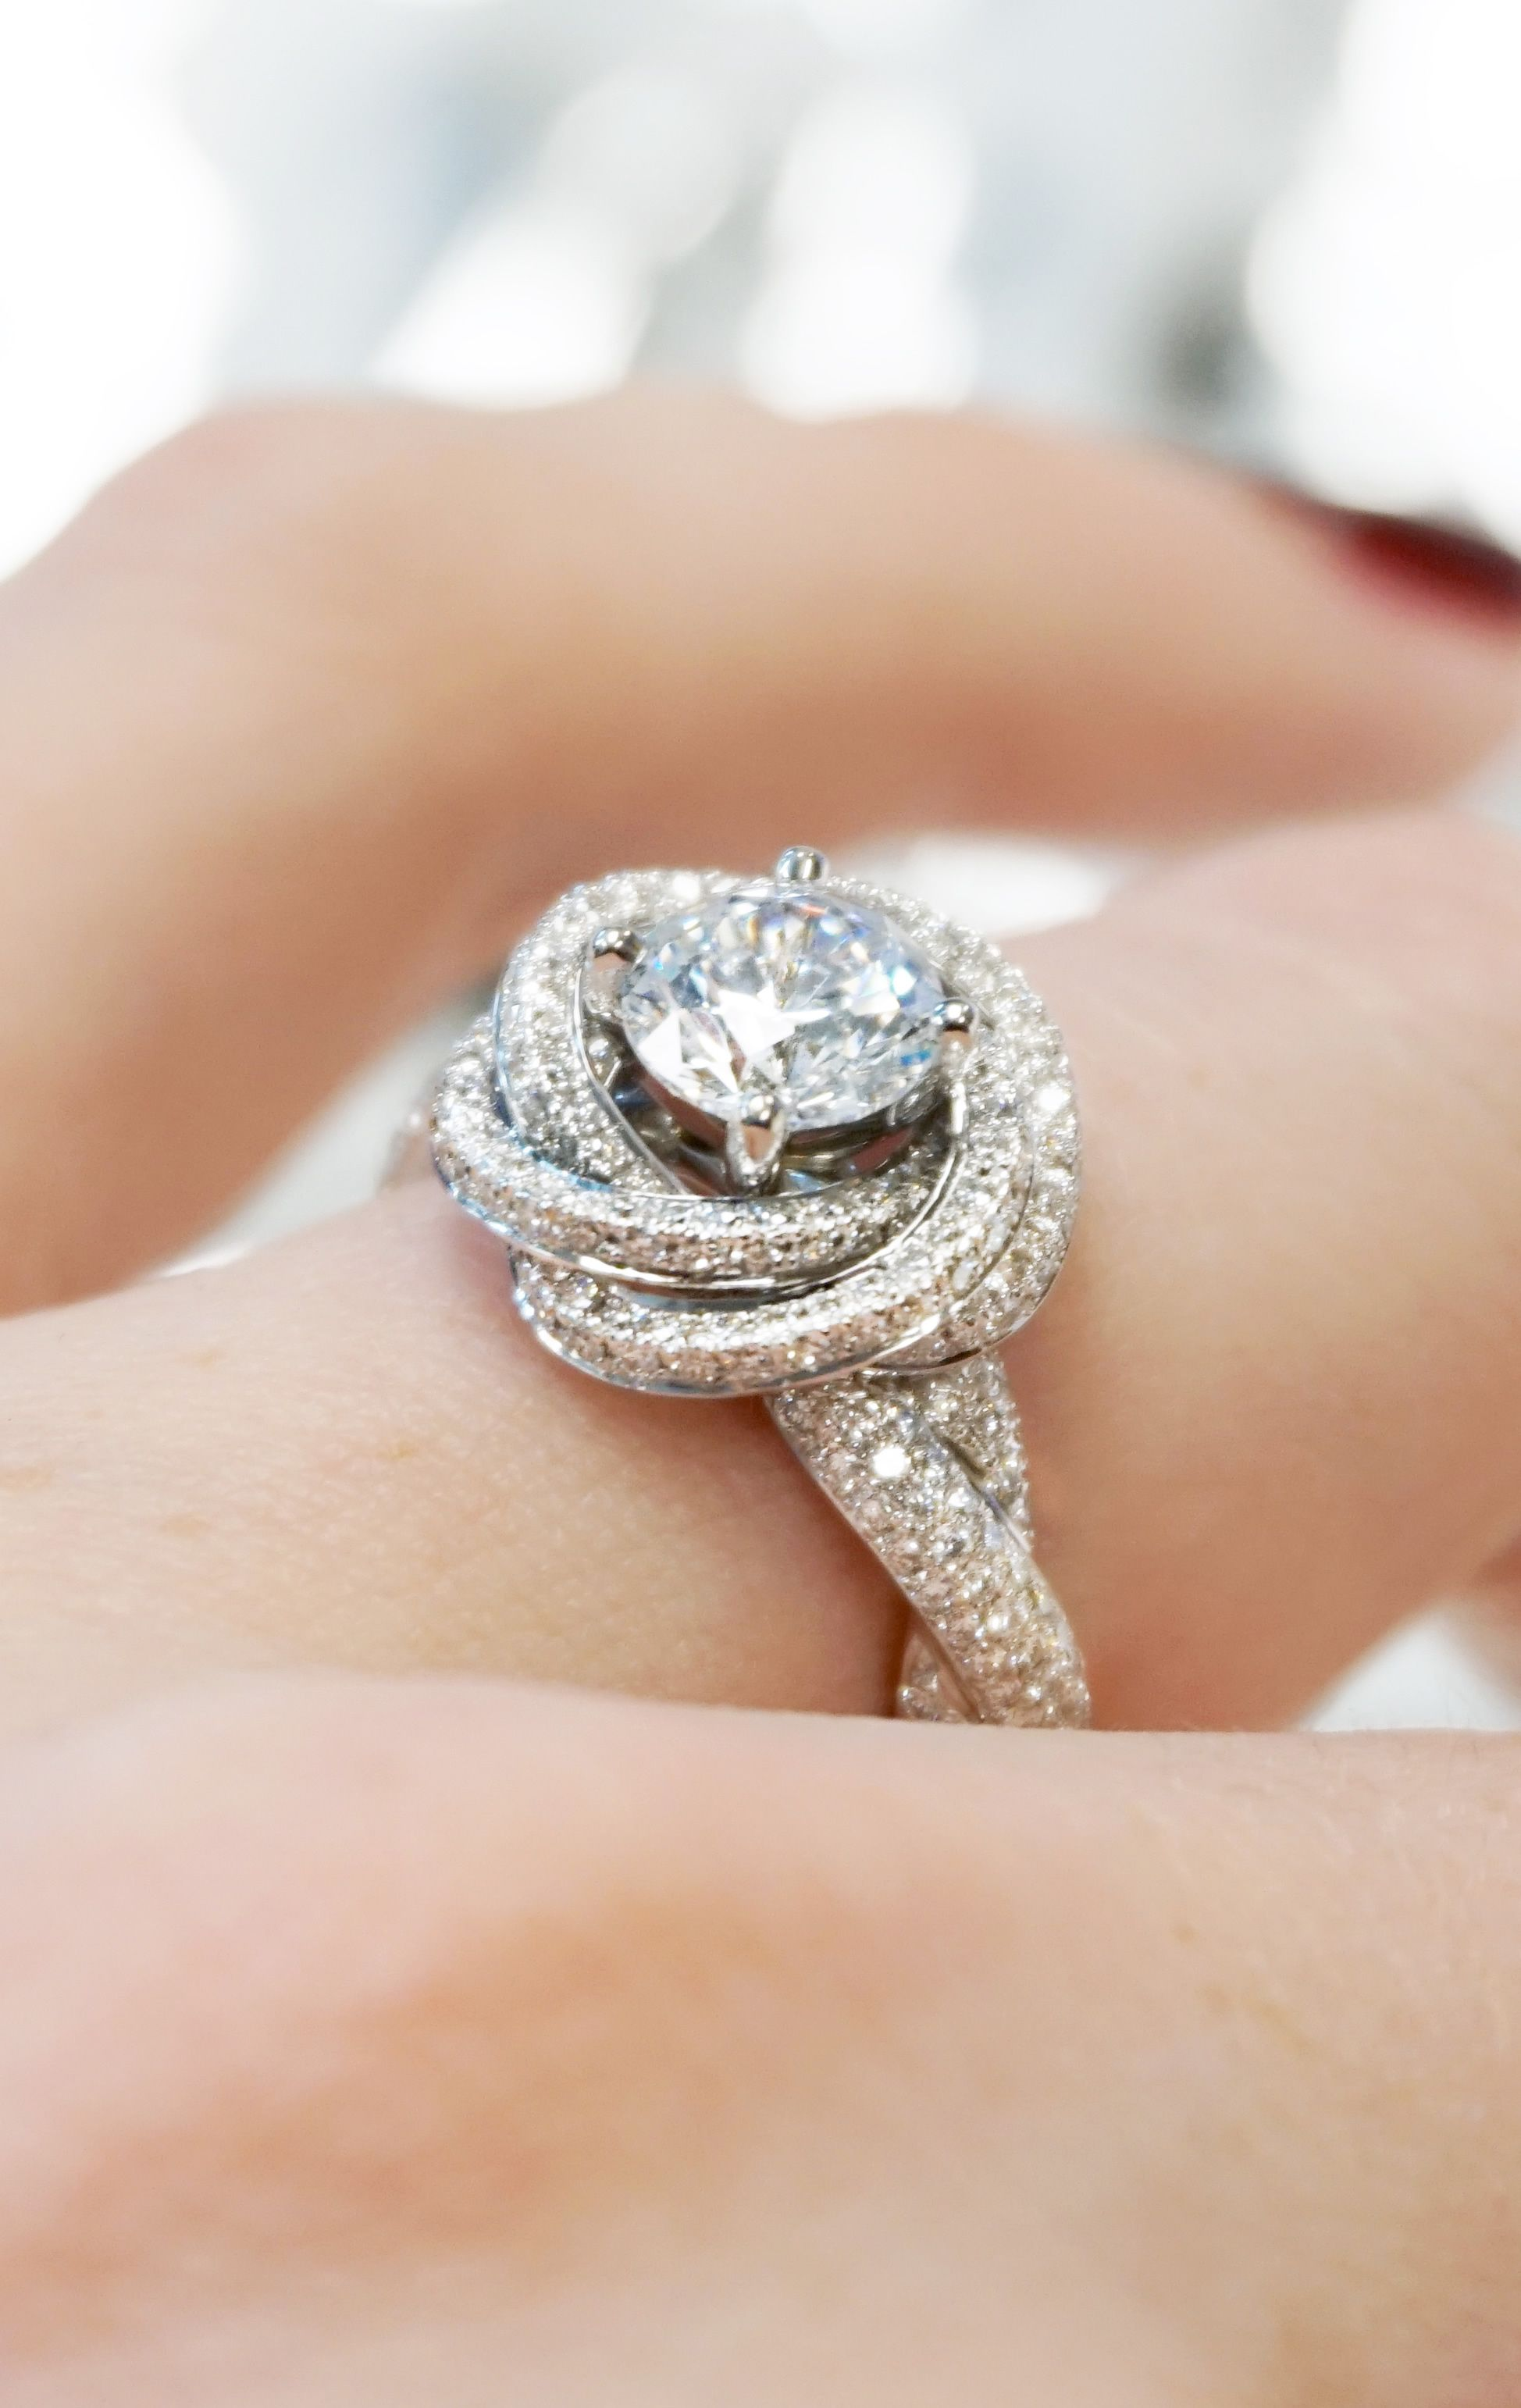 silver wedwebtalks wedding sterling set diamond rings affordable ring with diamondwedwebtalks